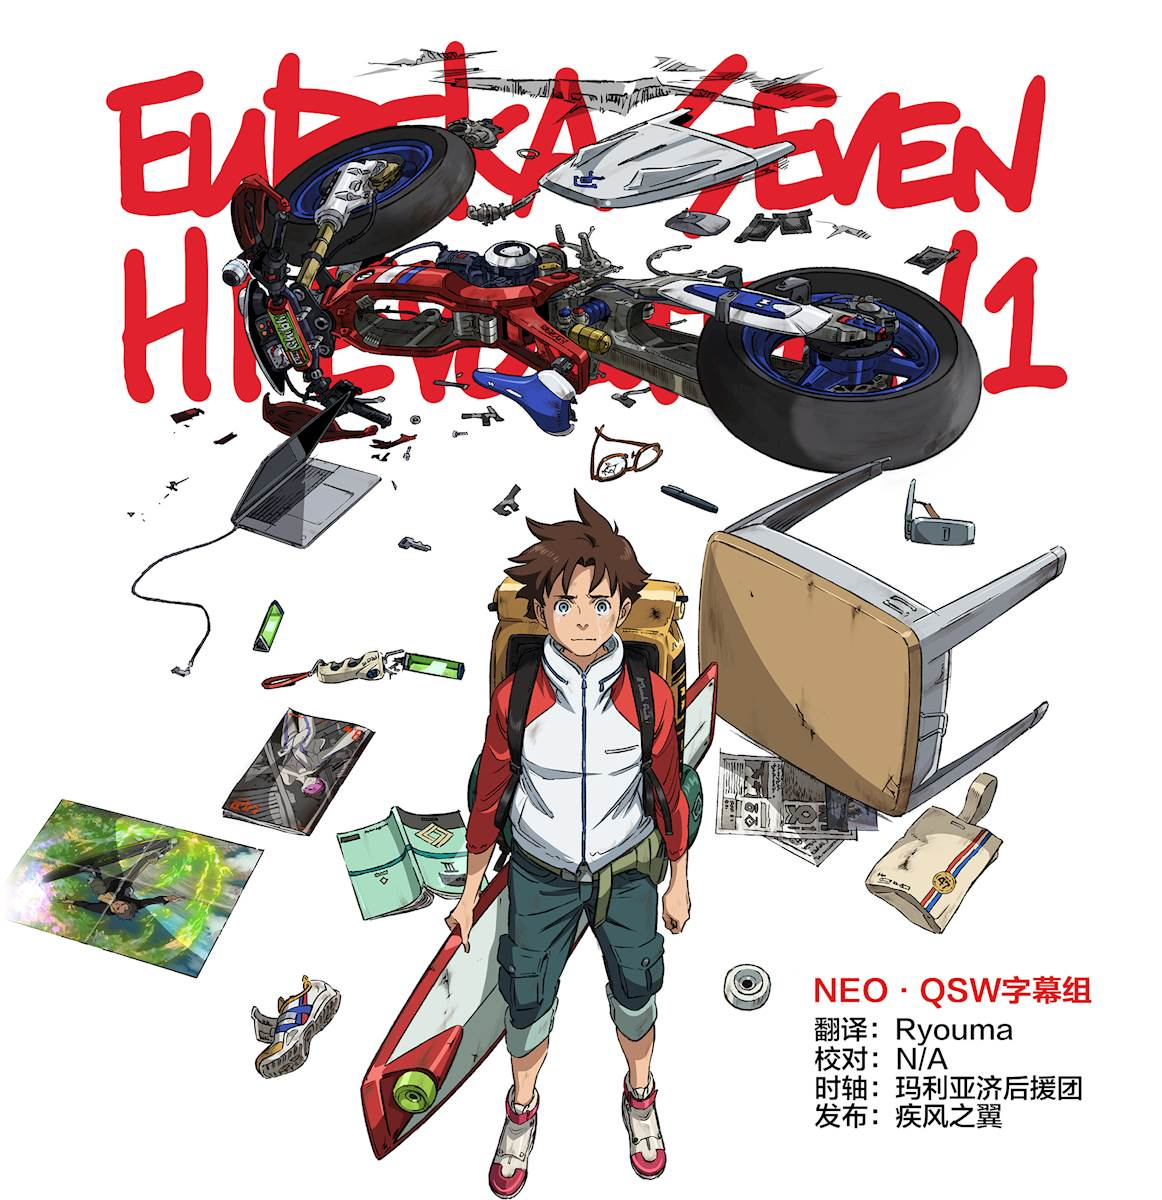 [NEO·QSW字幕组]交響詩篇EUREKA7 Hi-Evoluation 01 [Ver.QSW SPCIAL][剧场版][BDrip][GB][720P][MP4]